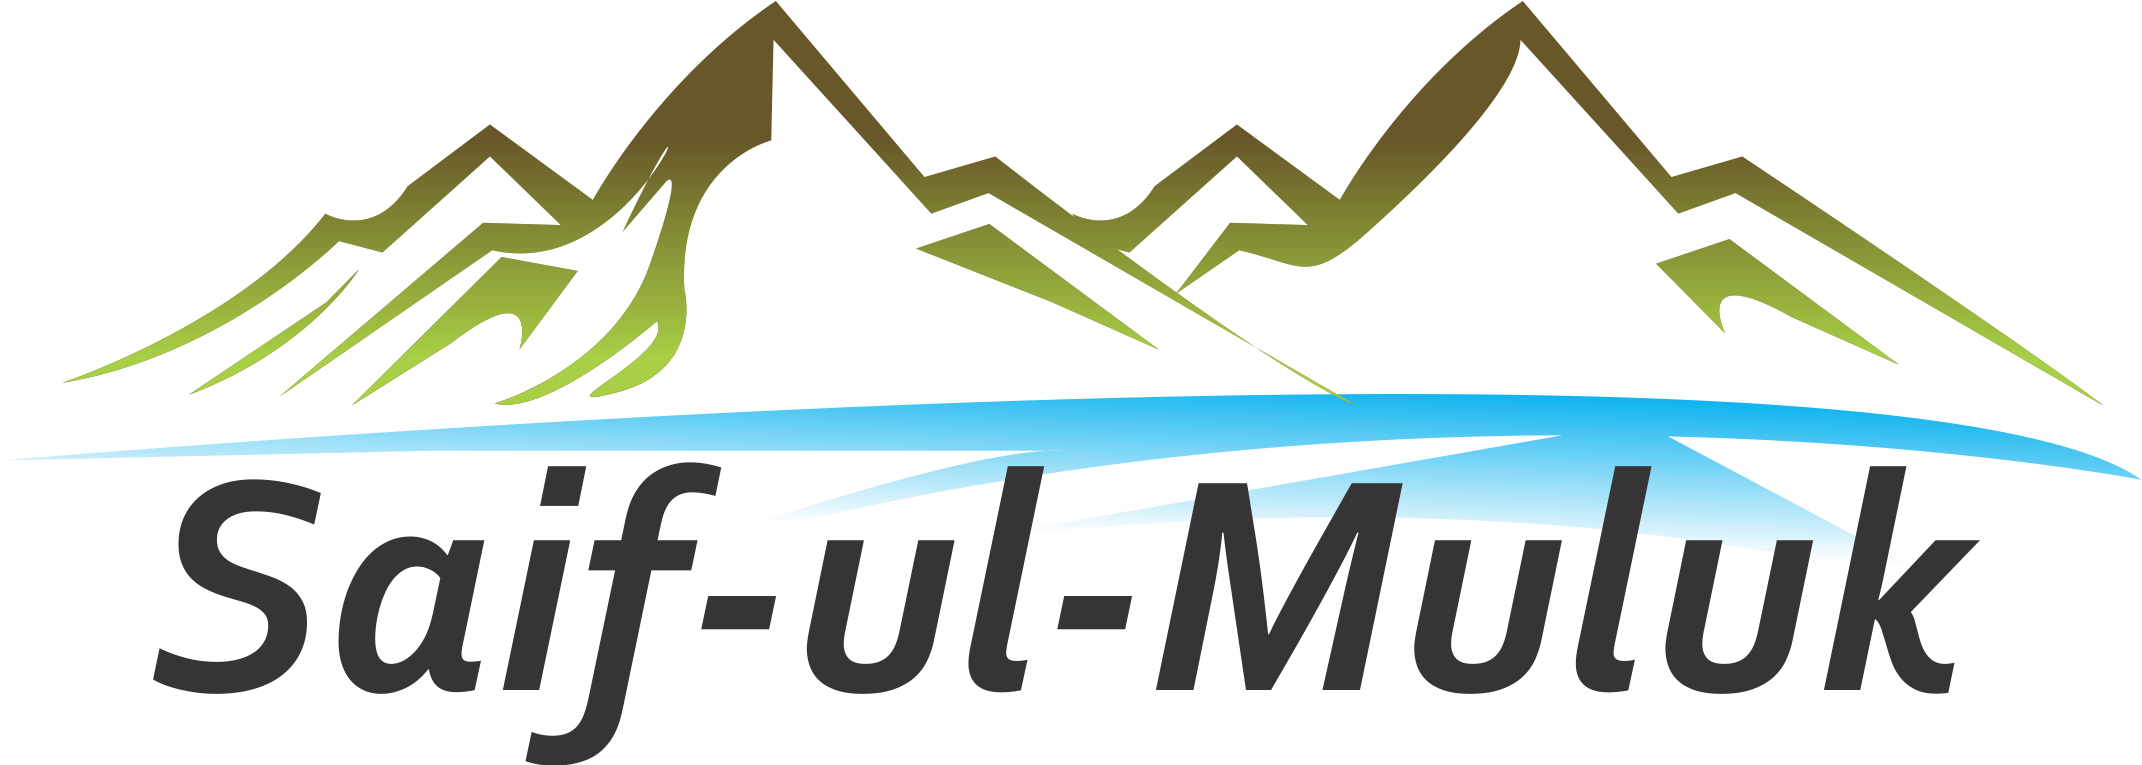 SaifulMuluk Tour and Travel Company | Saif-Ul-Muluk | 5 Beautiful Places in Pakistan for Tourist | Saif ul Muluk